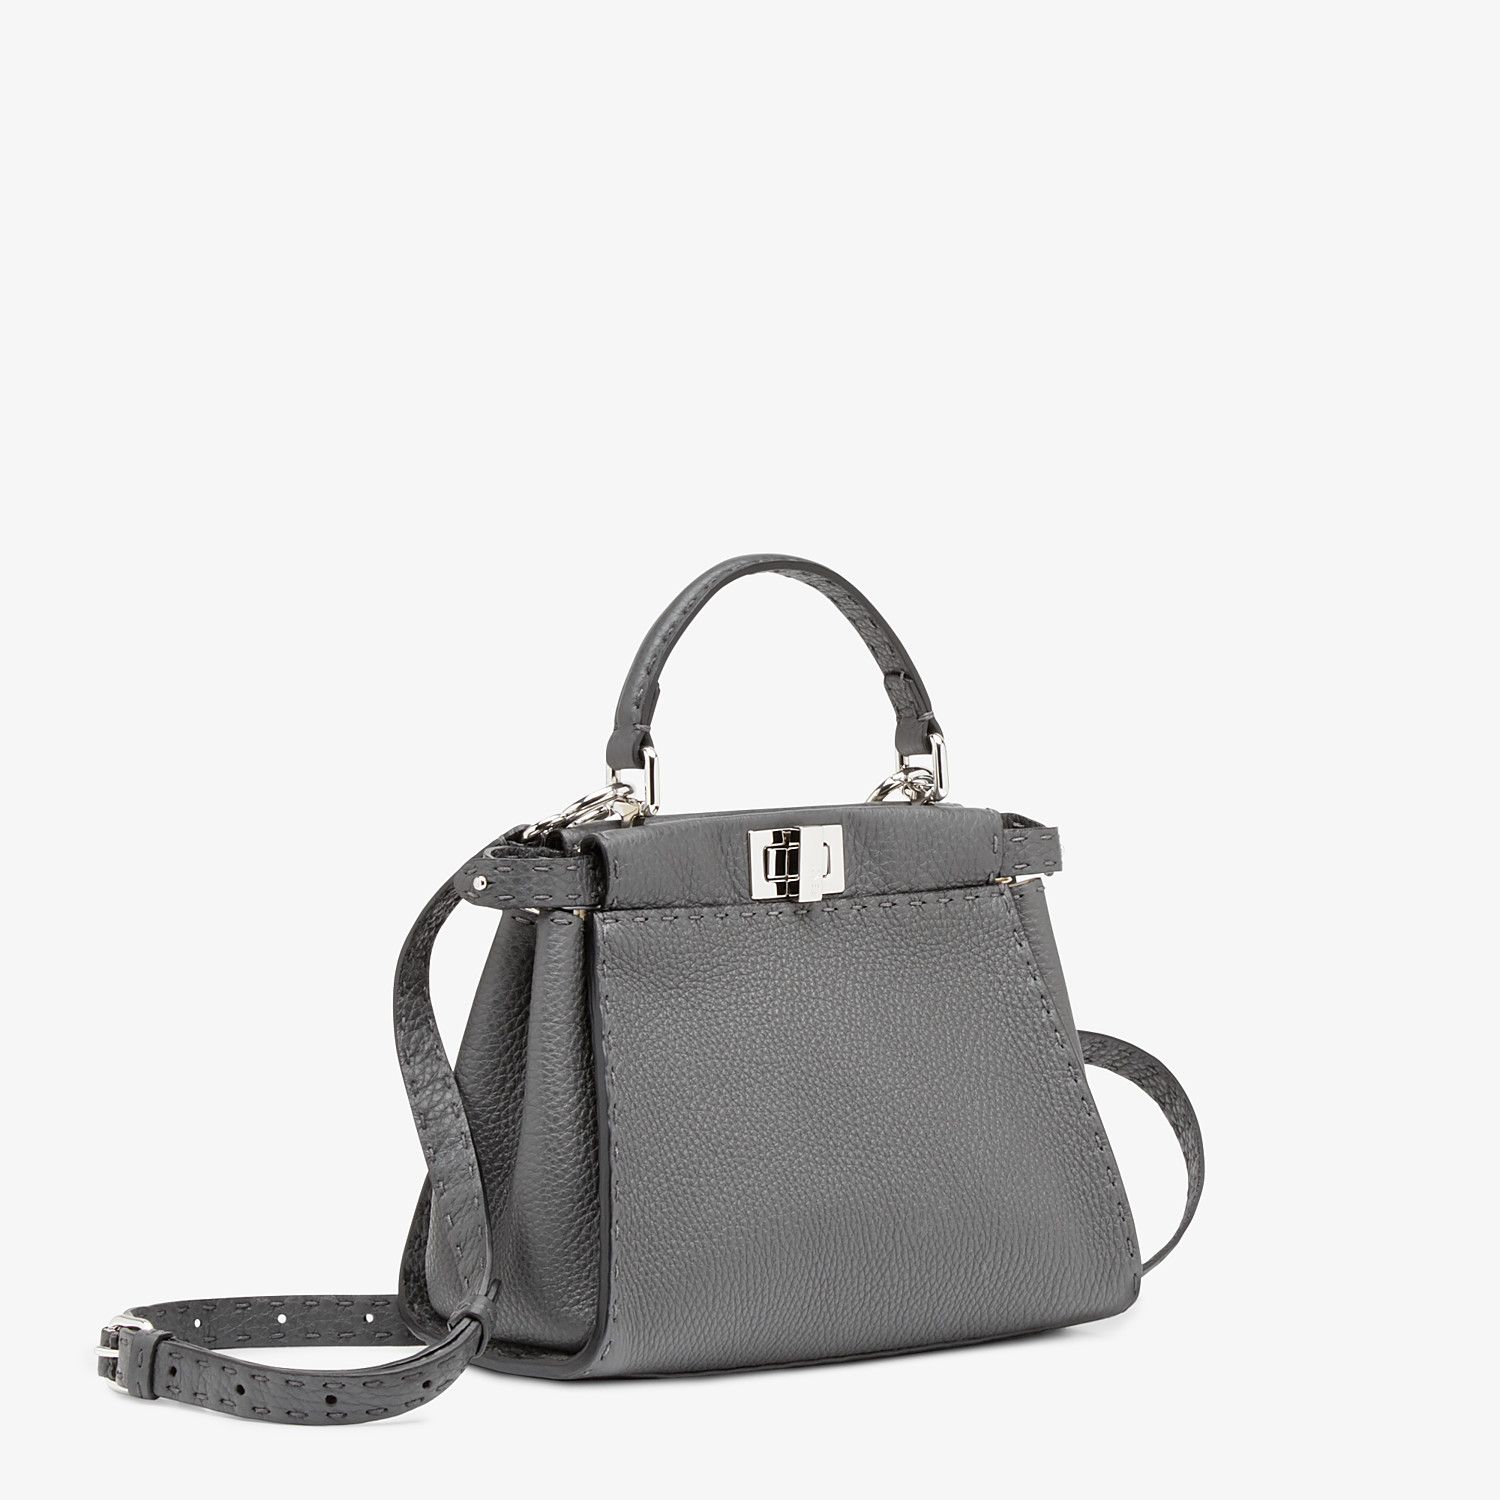 FENDI PEEKABOO ICONIC MINI - Asphalt-grey Selleria handbag - view 2 detail